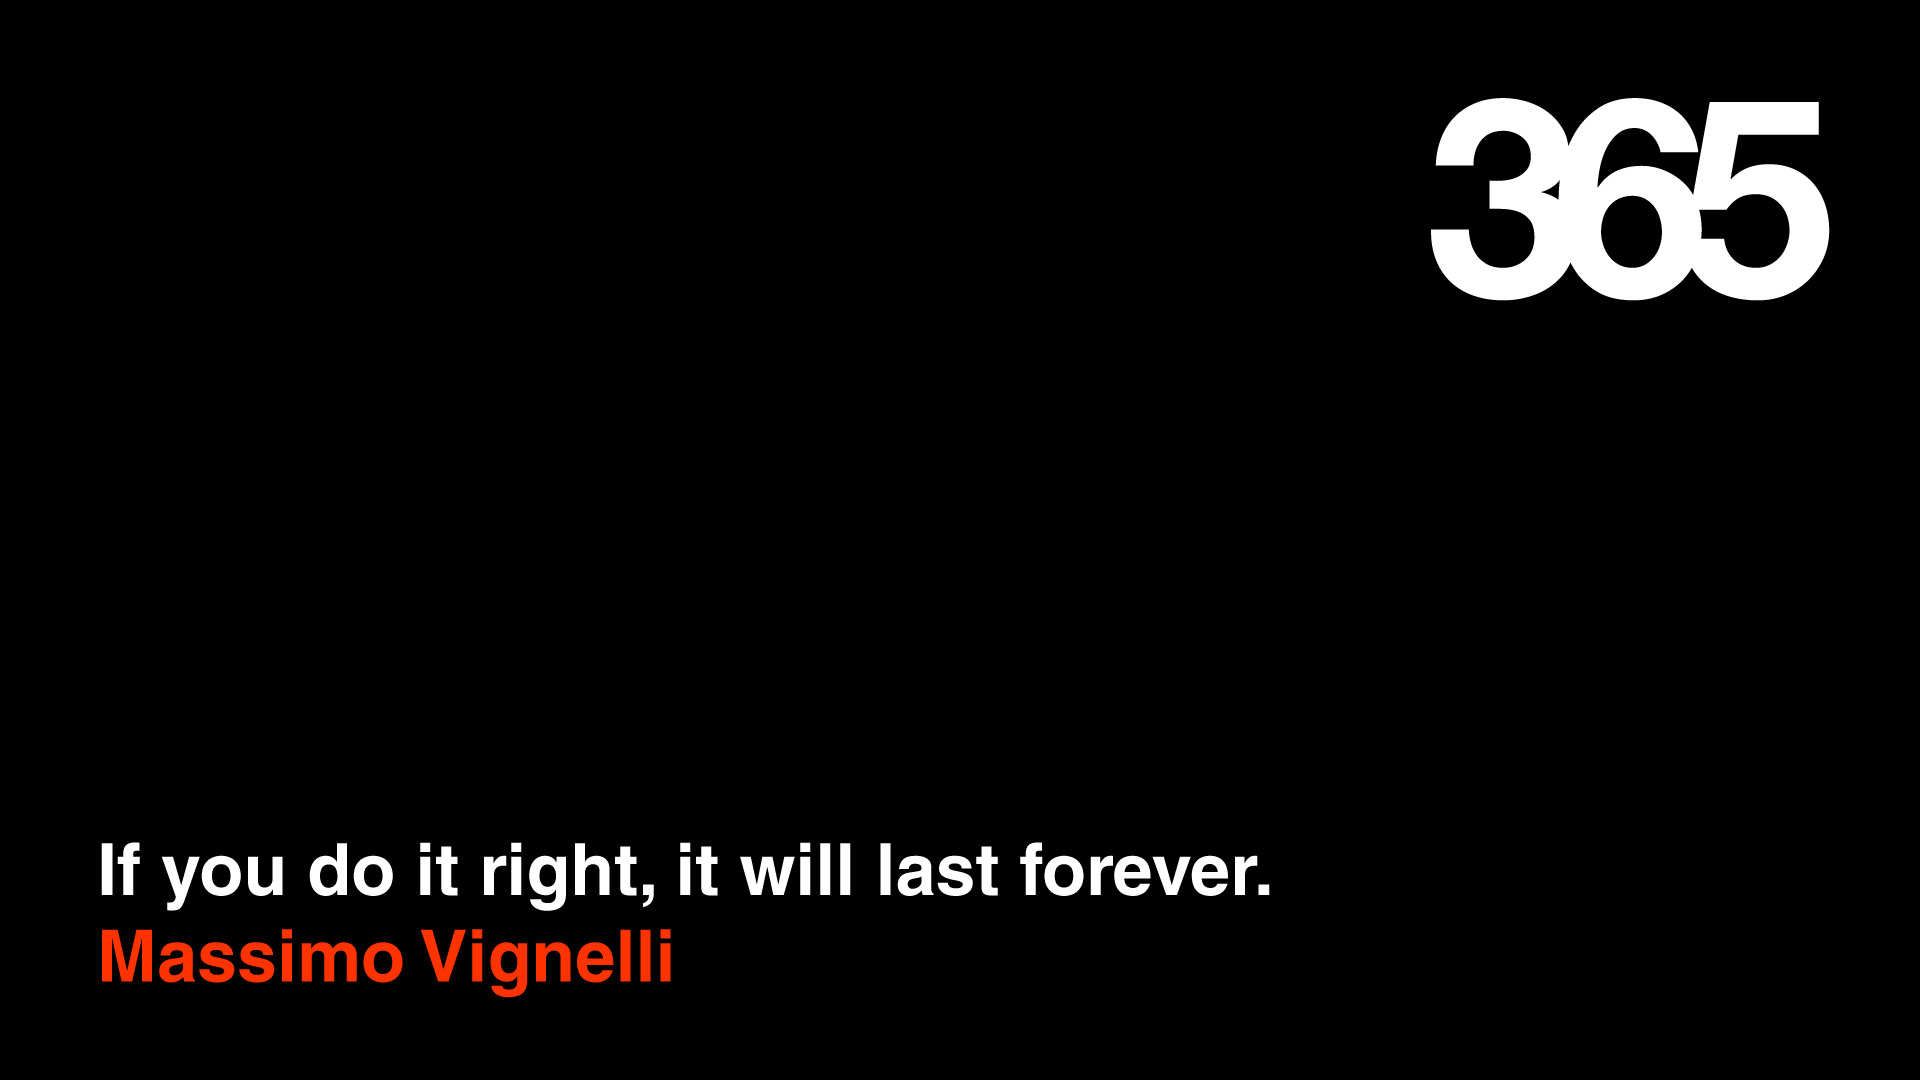 Inspirational Quotes from Famous Designers - Massimo Vignelli - Forever